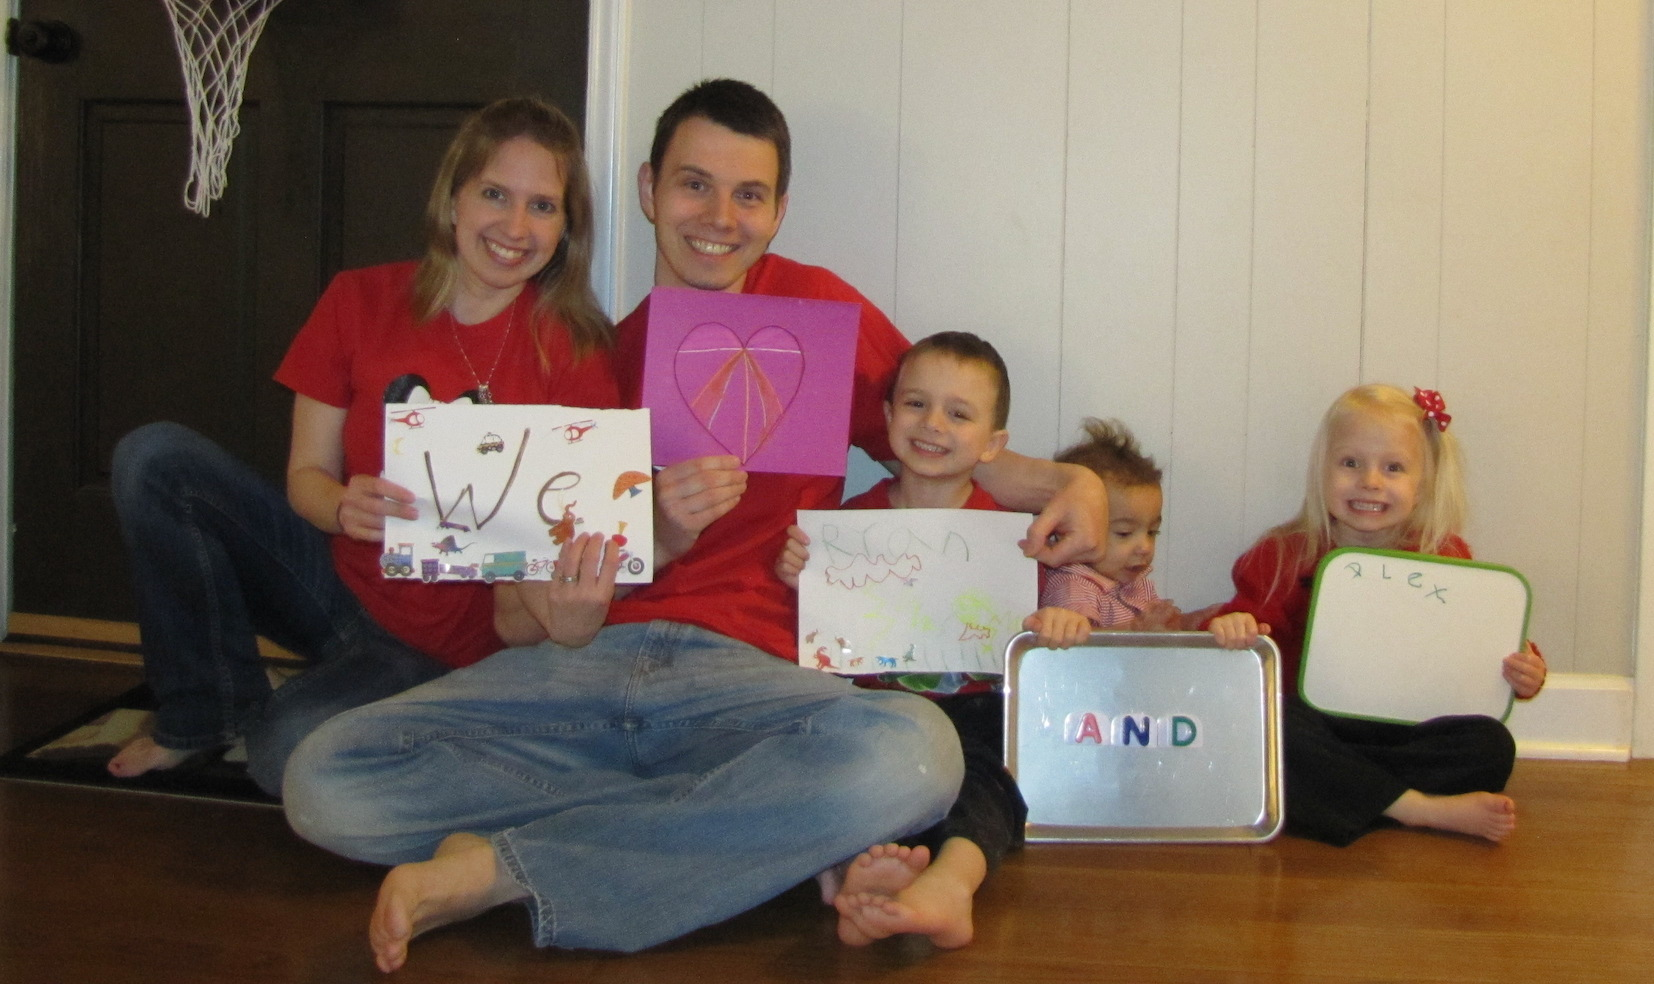 Elizabeth, Mark, Jacob, Lucas, and Ava wear red in memory of Ryan and Alex